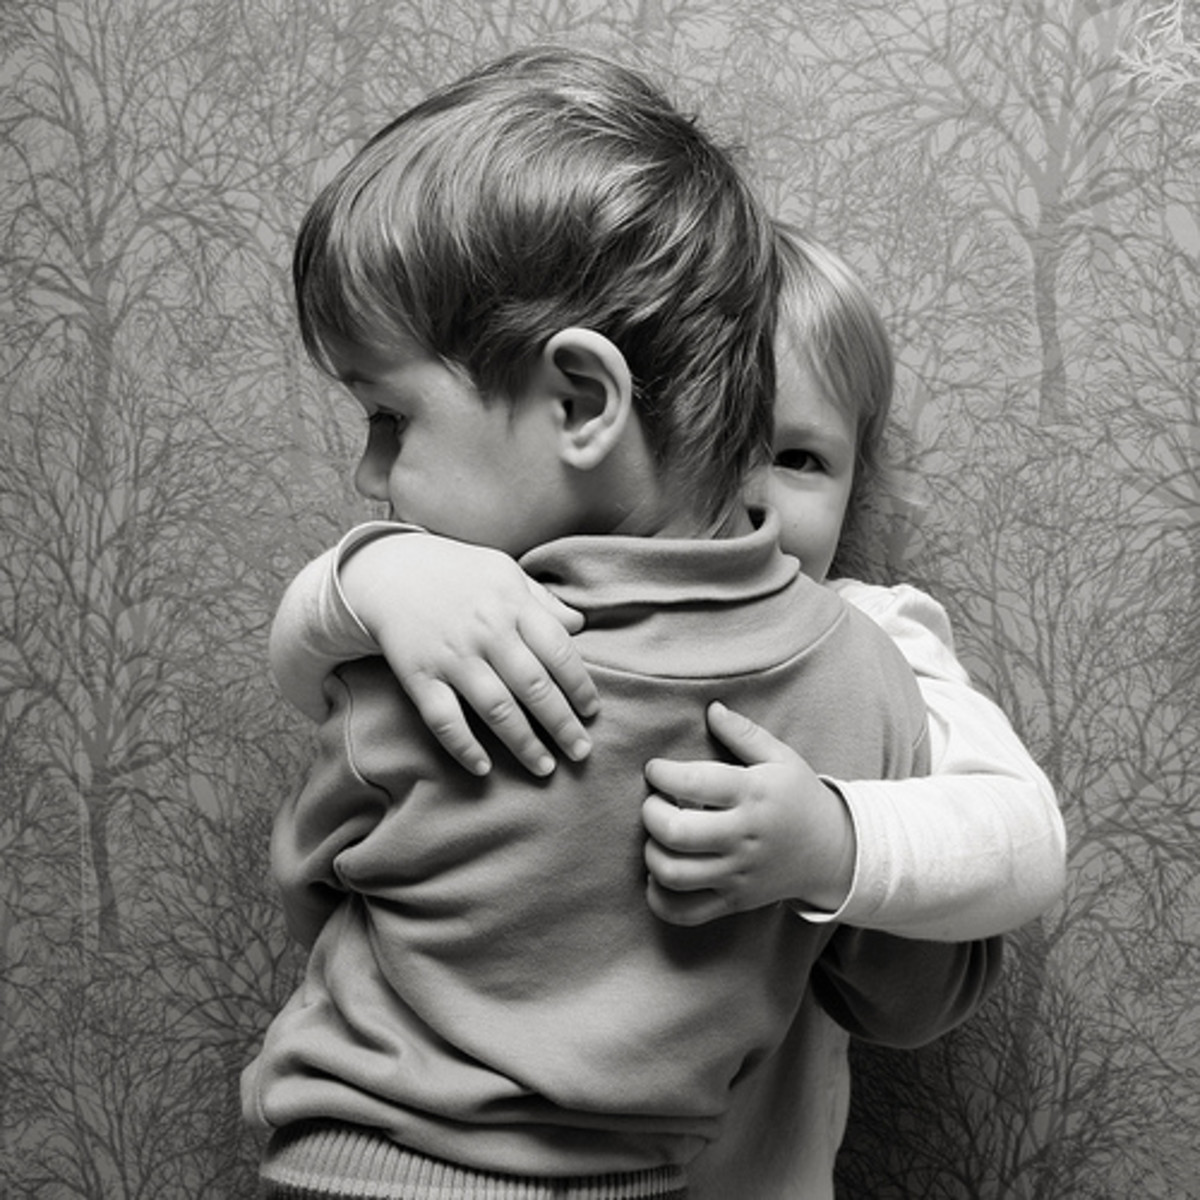 Raising boys - and all children - to care about the feelings of others is a lesson that begins early on.